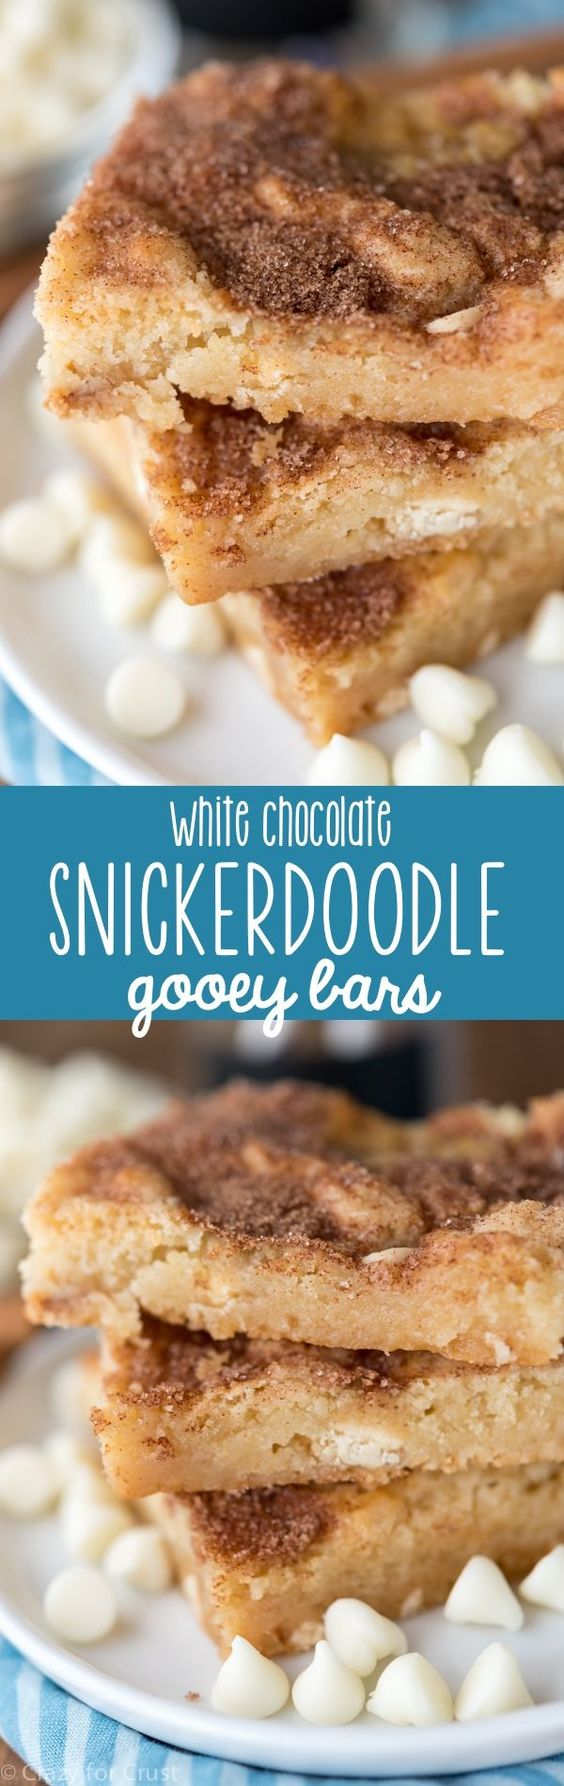 EASY White Chocolate Snickerdoodle Gooey Bars Dessert Recipe via Crazy for Crust - These EASY White Chocolate Snickerdoodle Gooey Bars are full of cinnamon sugar! Cookie bars are the best, and these are my favorite! #dessertbars #cookiebars #barsrecipes #dessertforacrowd #partydesserts #christmasdesserts #holidaydesserts #onepandesserts